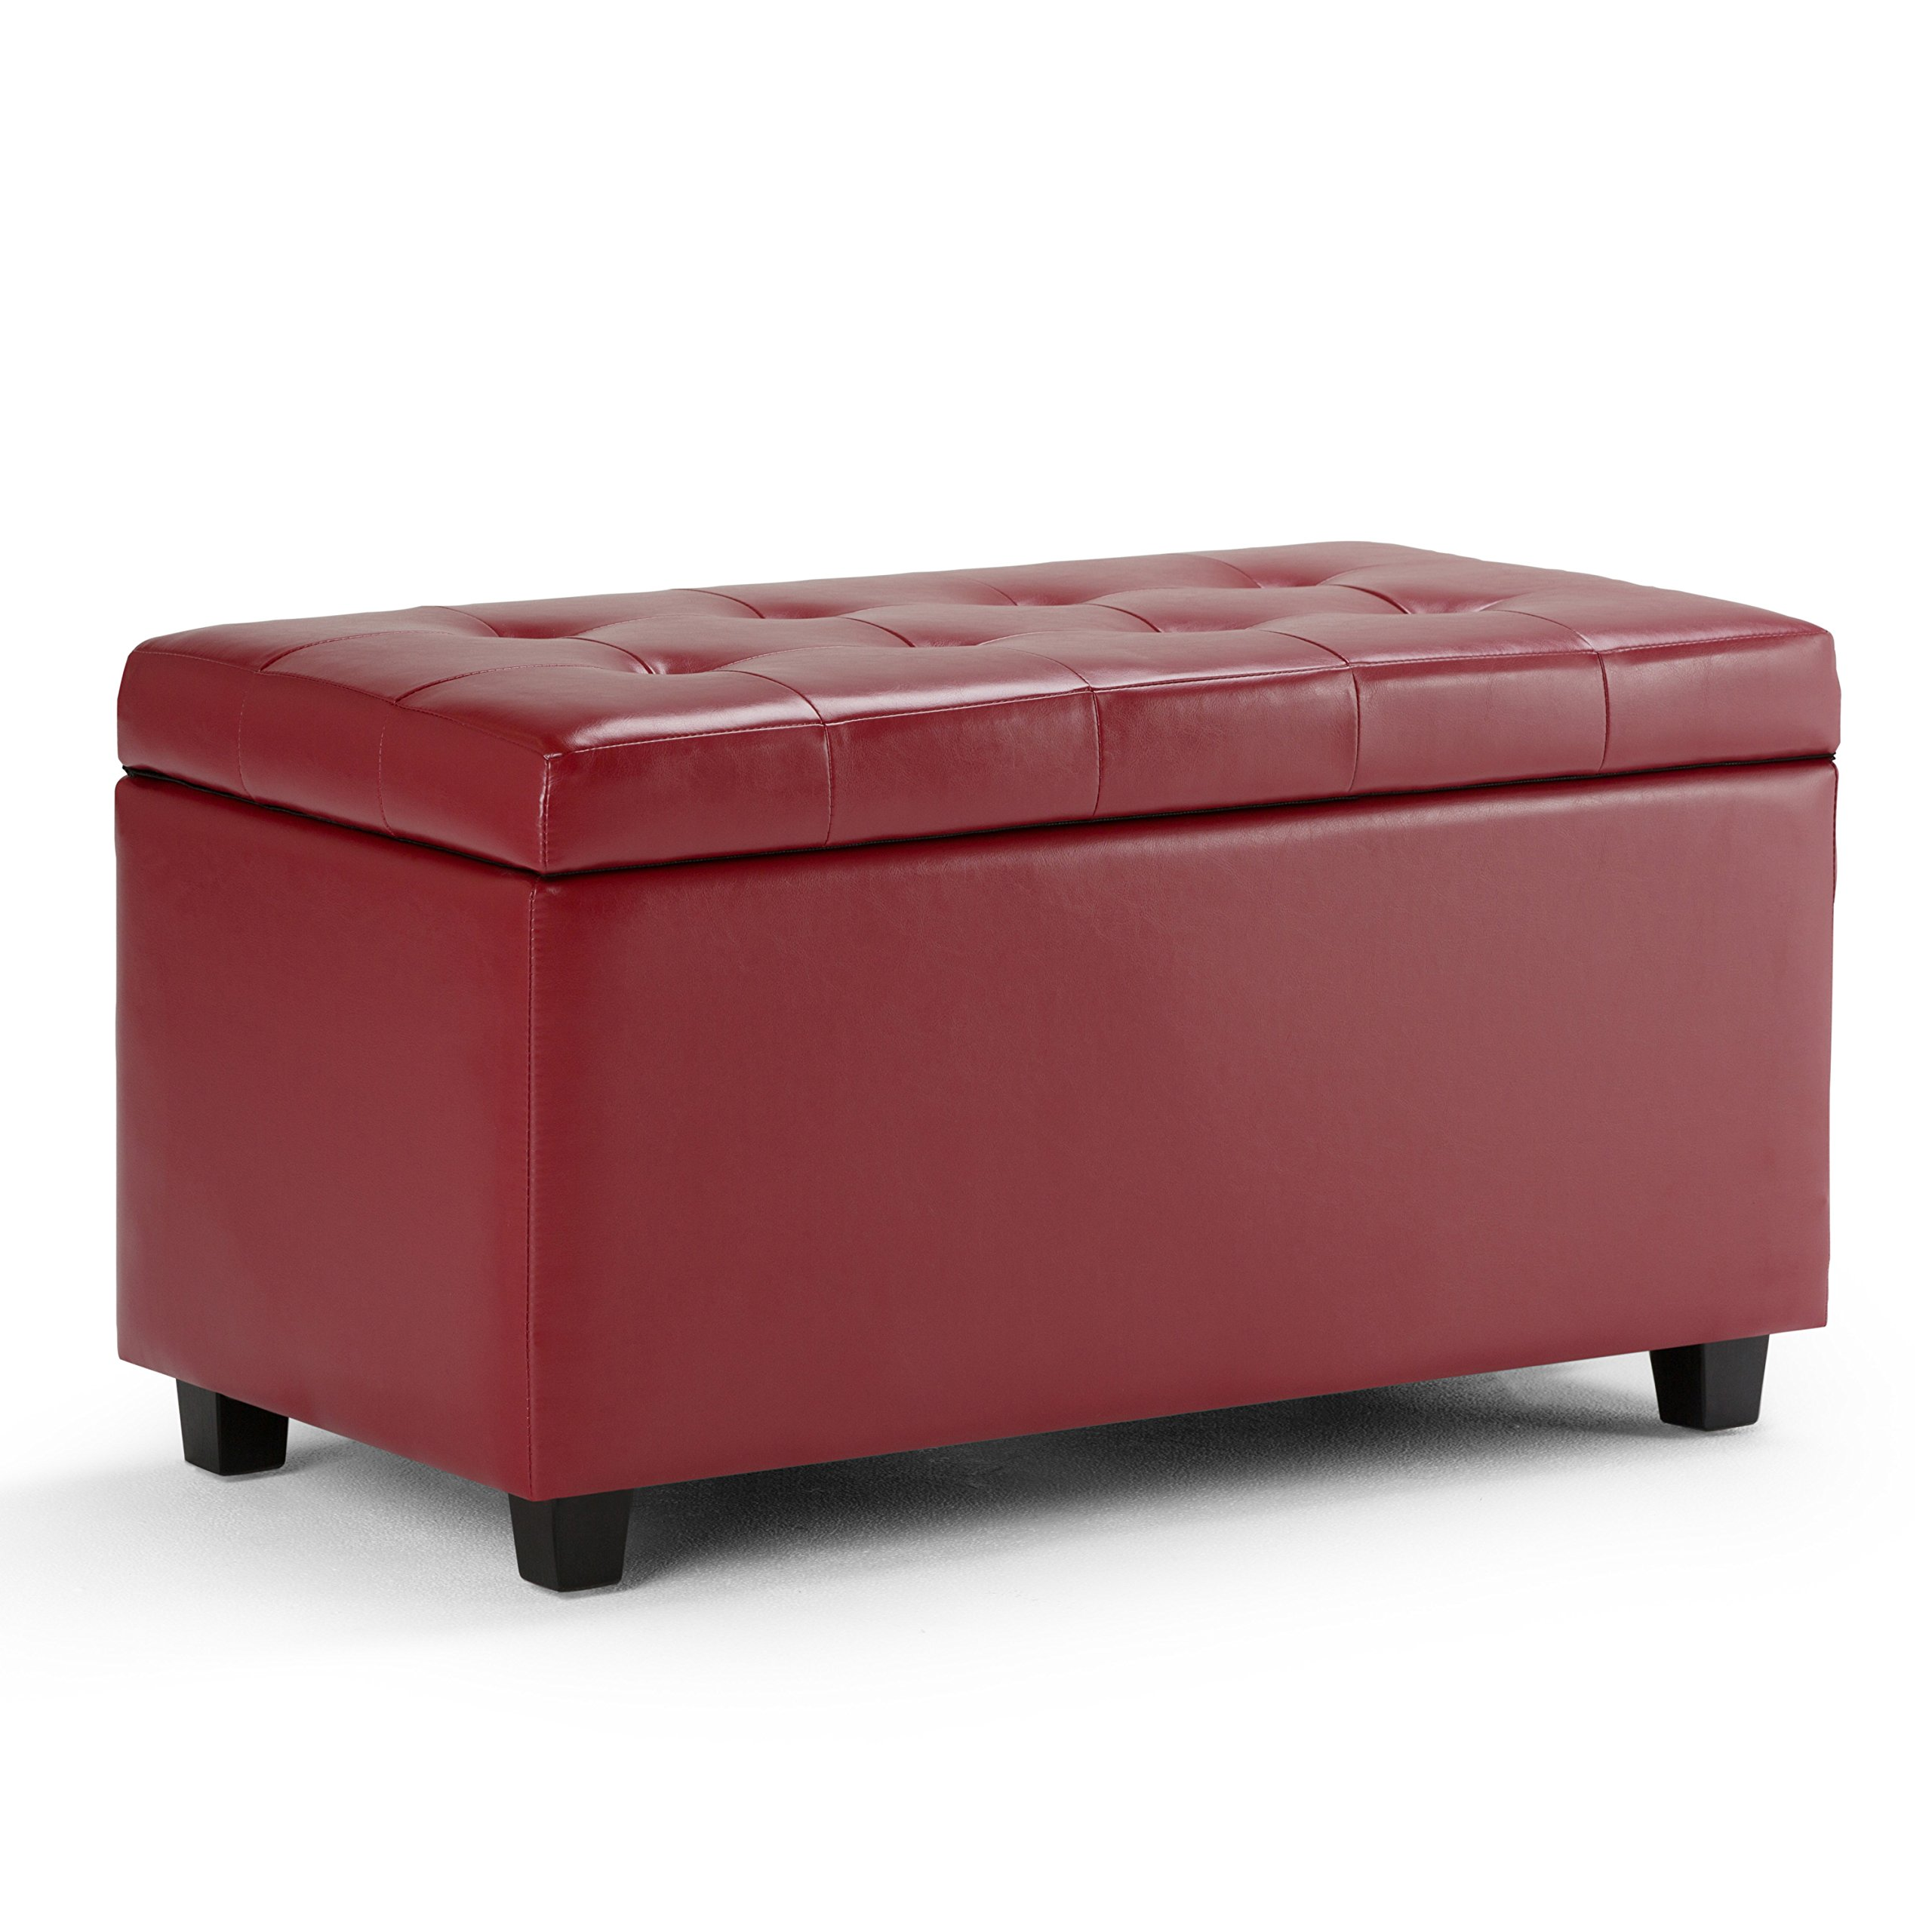 Simpli Home Cosmopolitan Faux Leather Rectangular Storage Ottoman Bench, Red